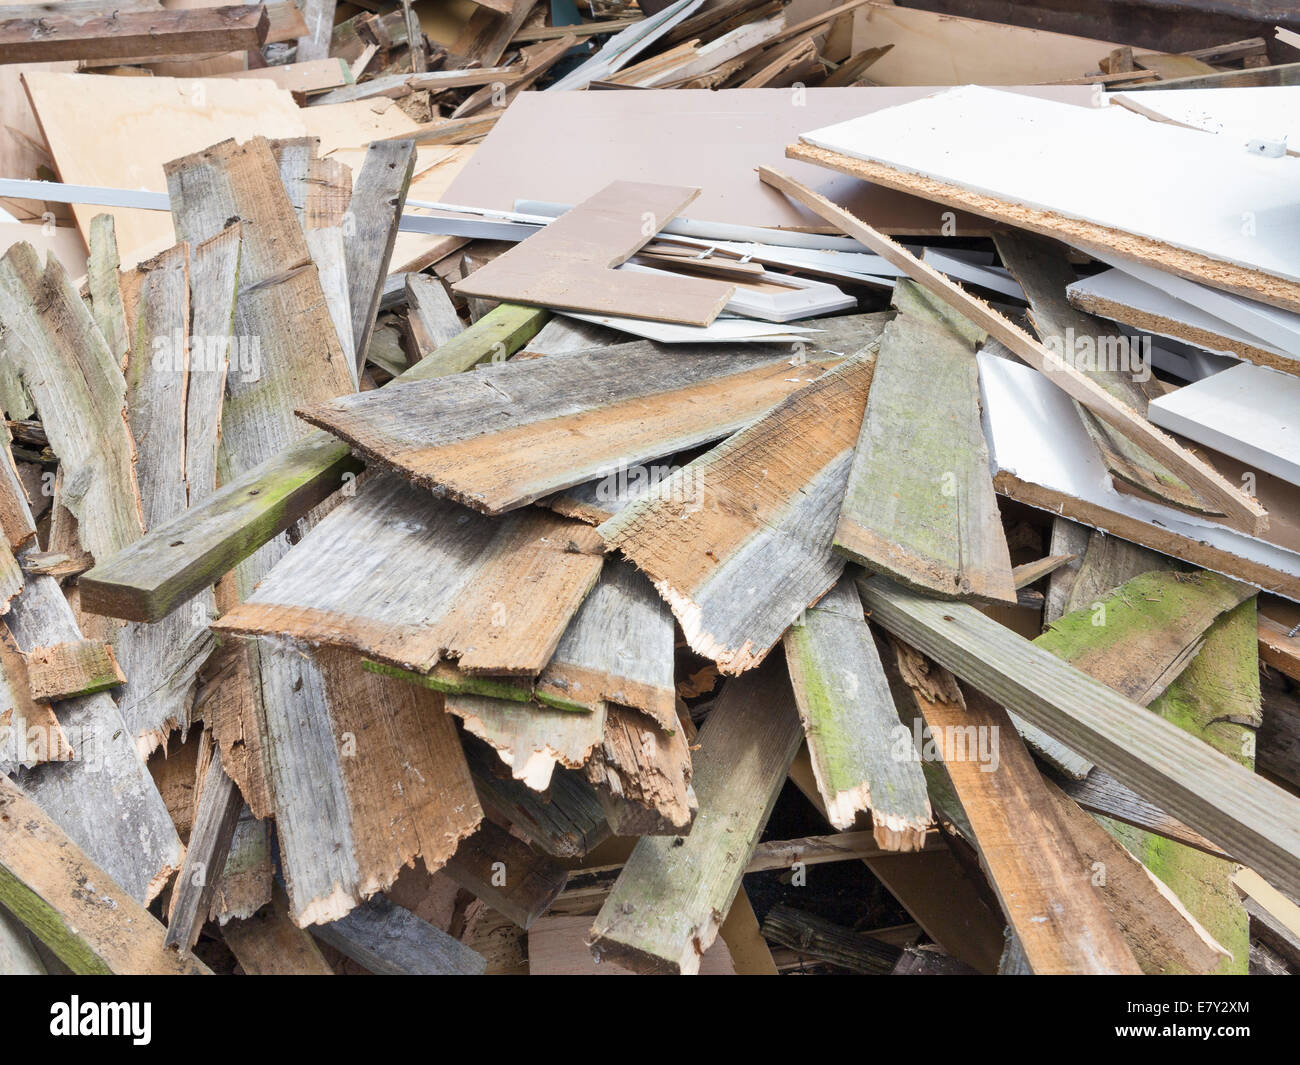 Local authority public recycling facility for waste wood, UK - Stock Image